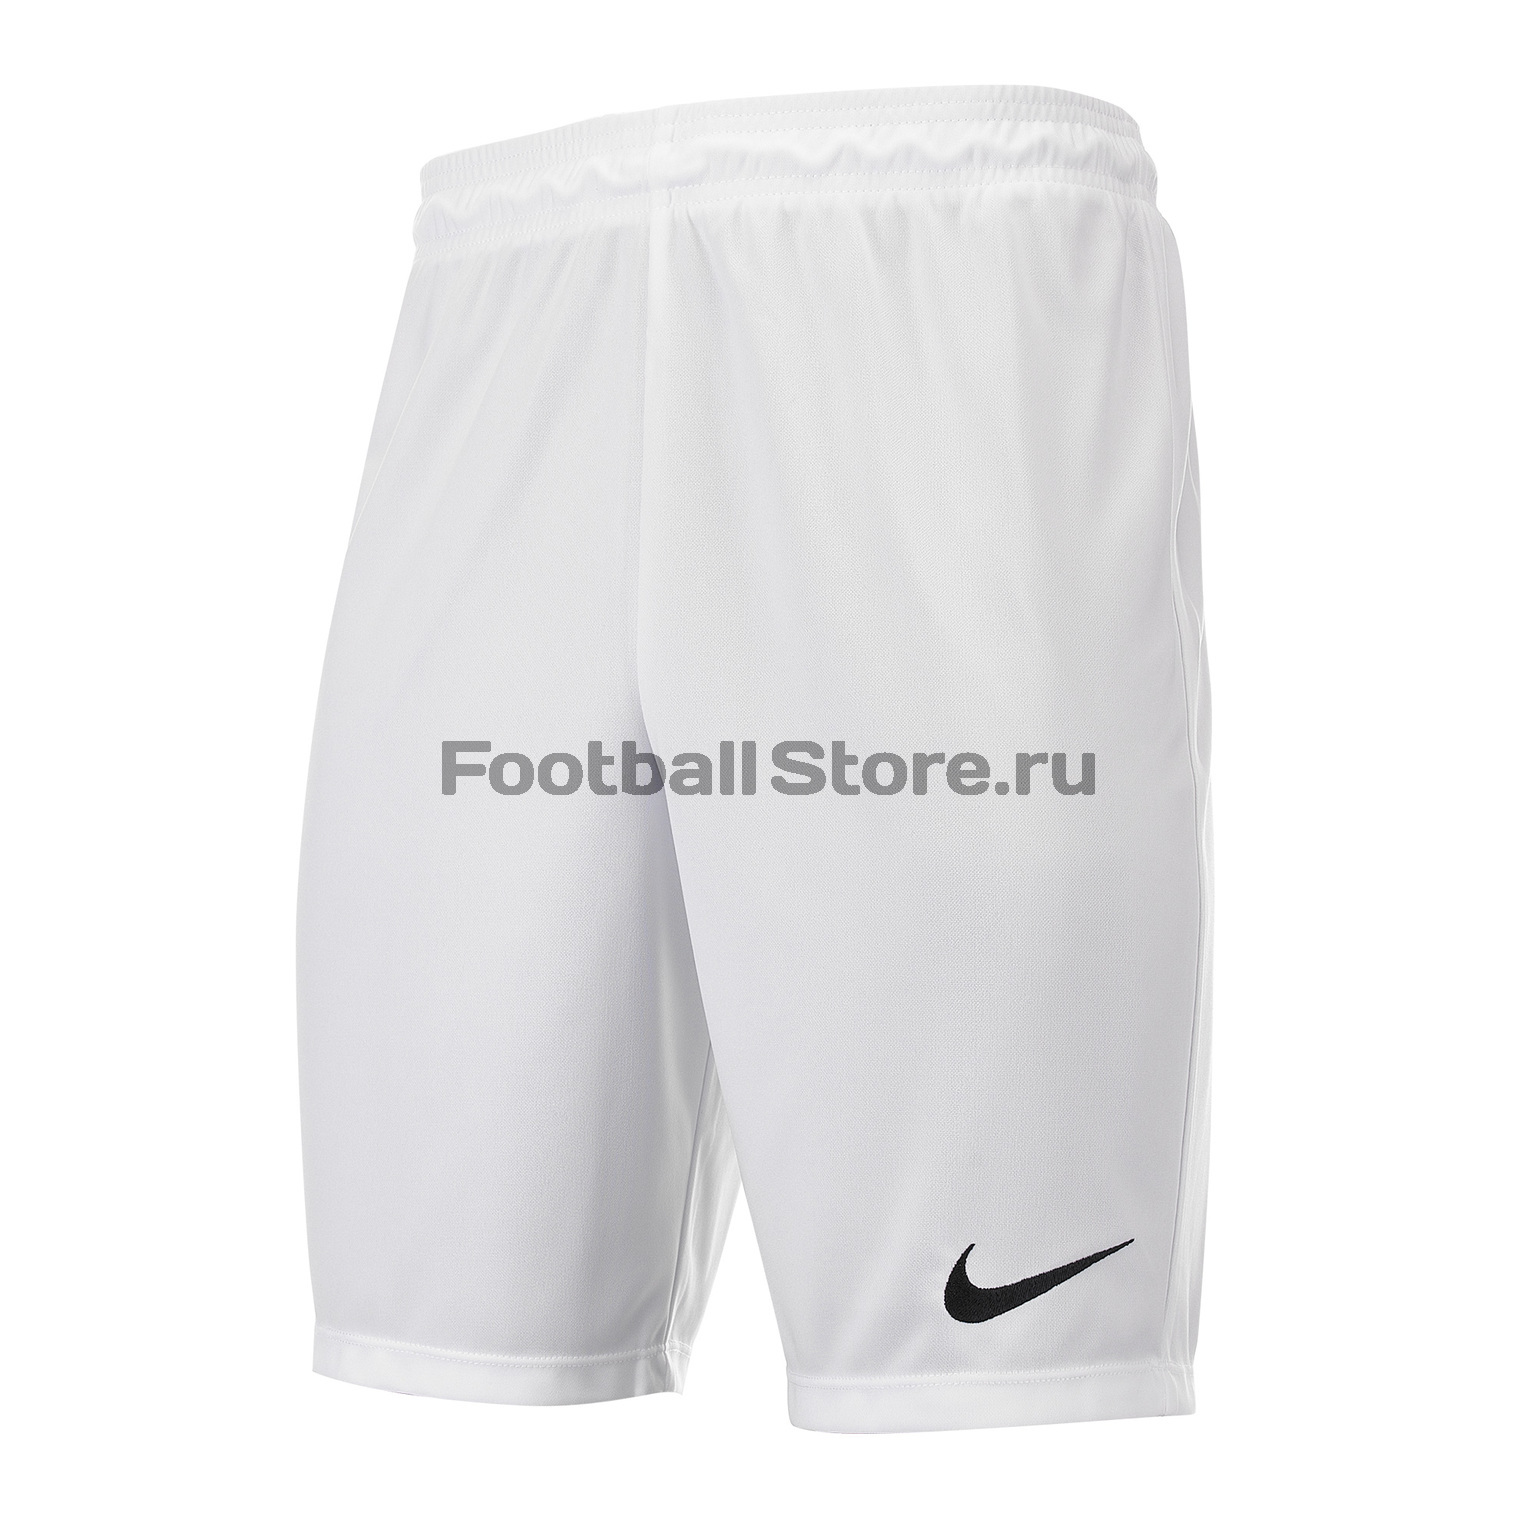 Шорты Nike Park II KNIT Short NB 725887-100 шорты nike park knit short wb 448222 739